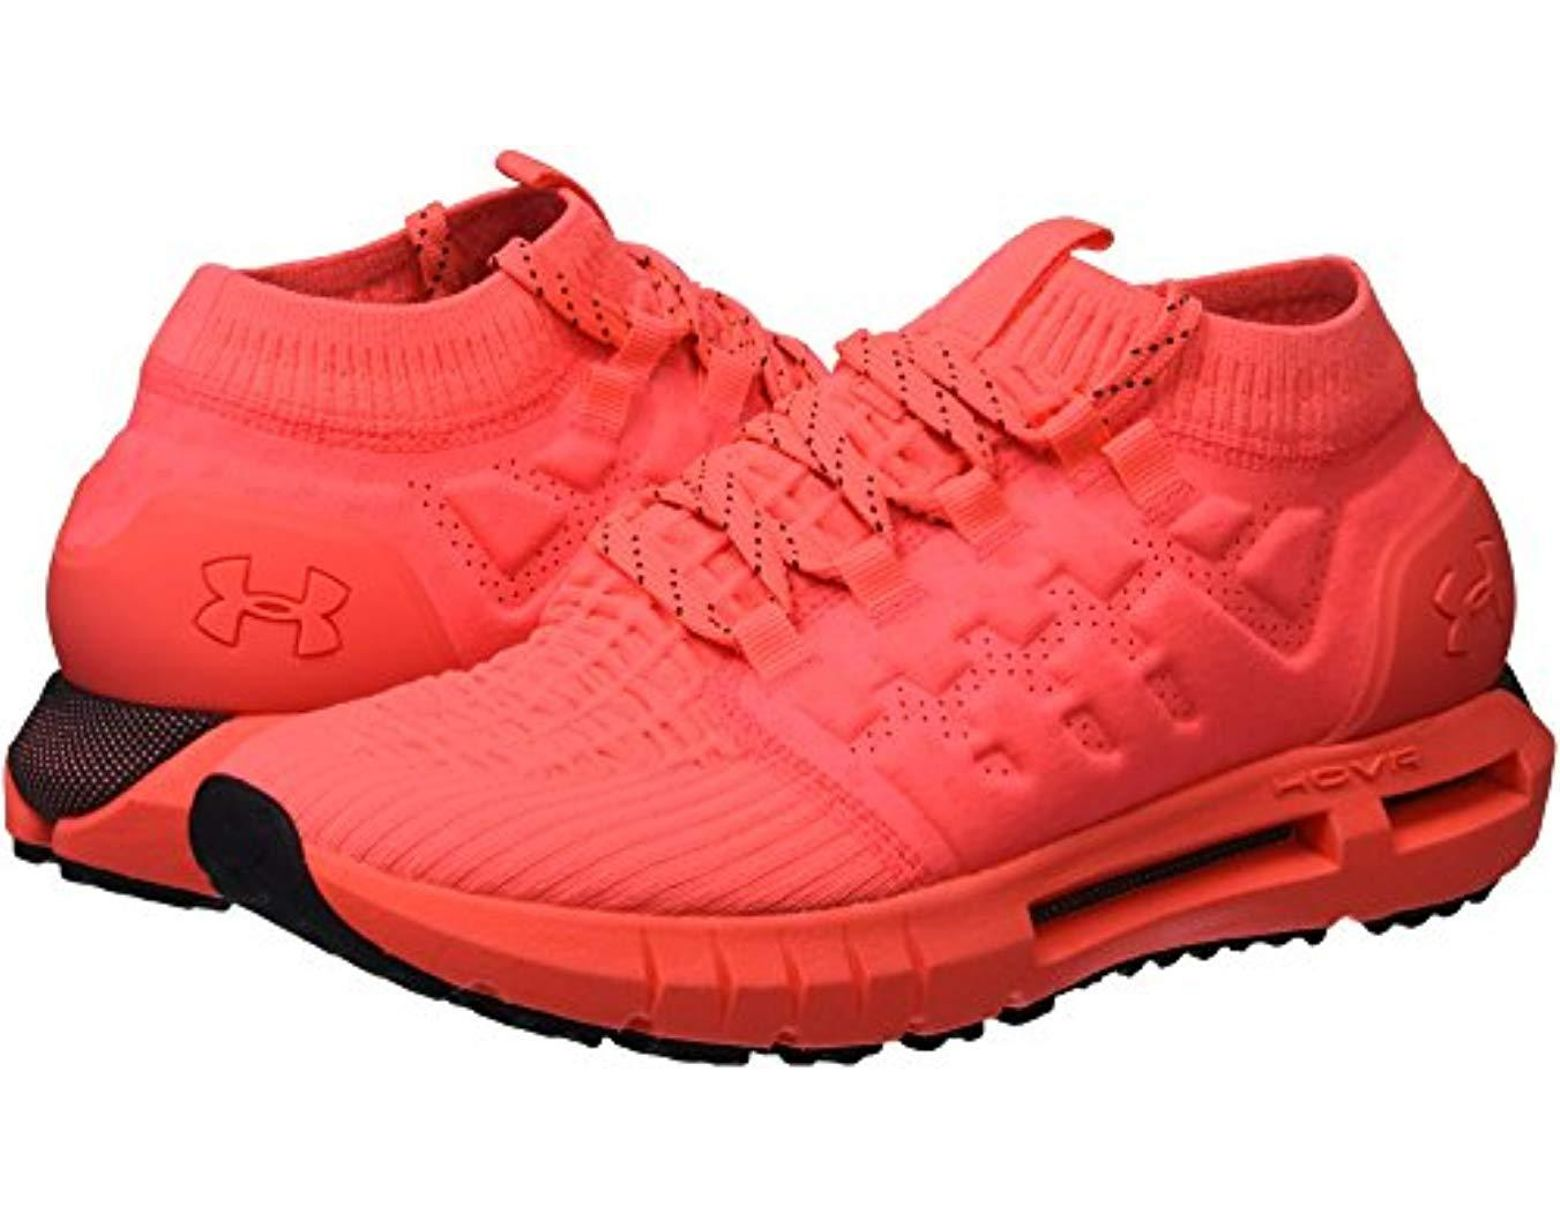 low priced f522f 8247d Under Armour Hovr Phantom Running Shoe in Red - Lyst